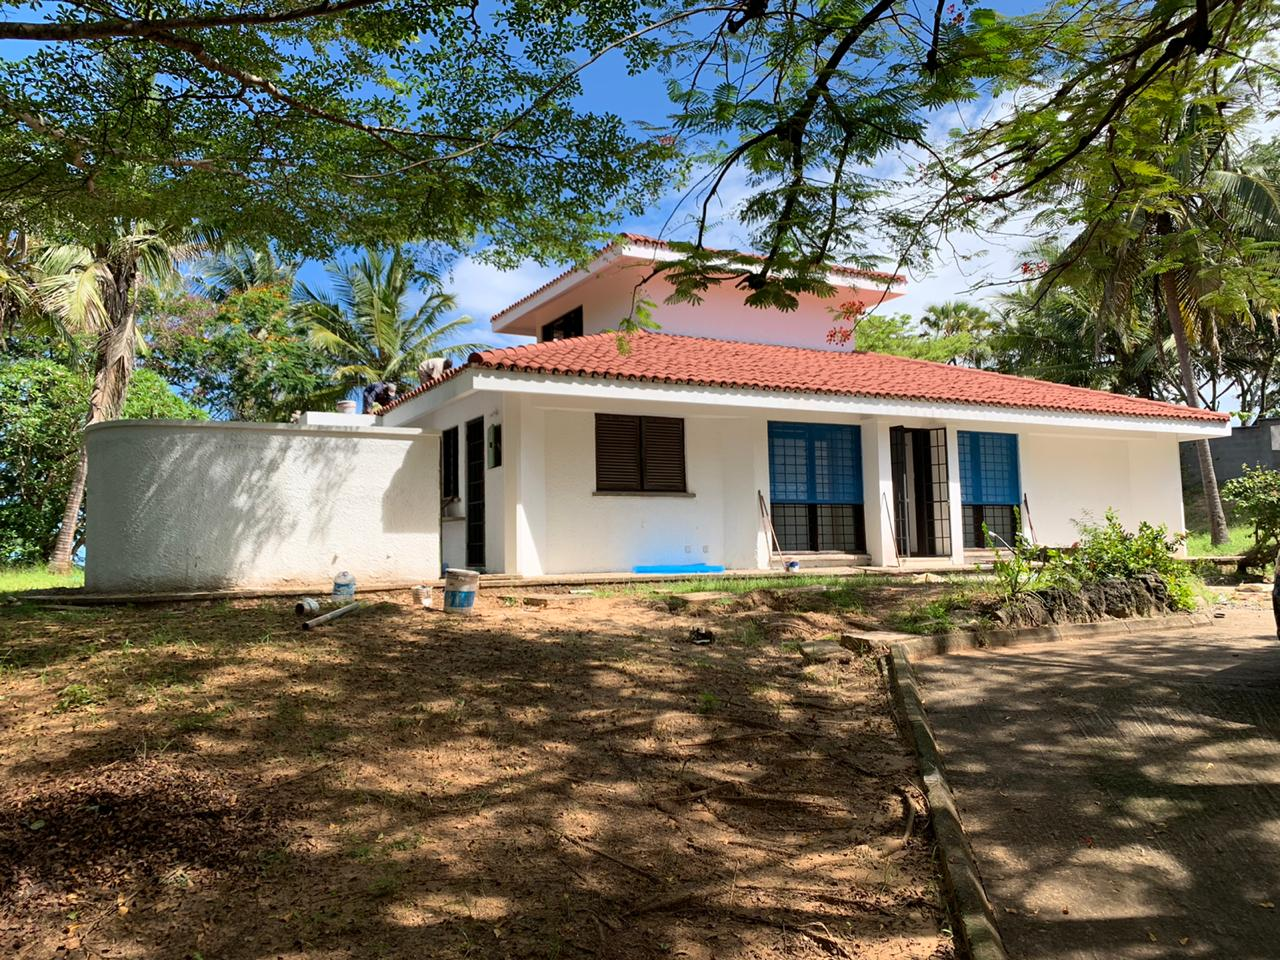 4br house with SQ for rent near Nyali beach hotel